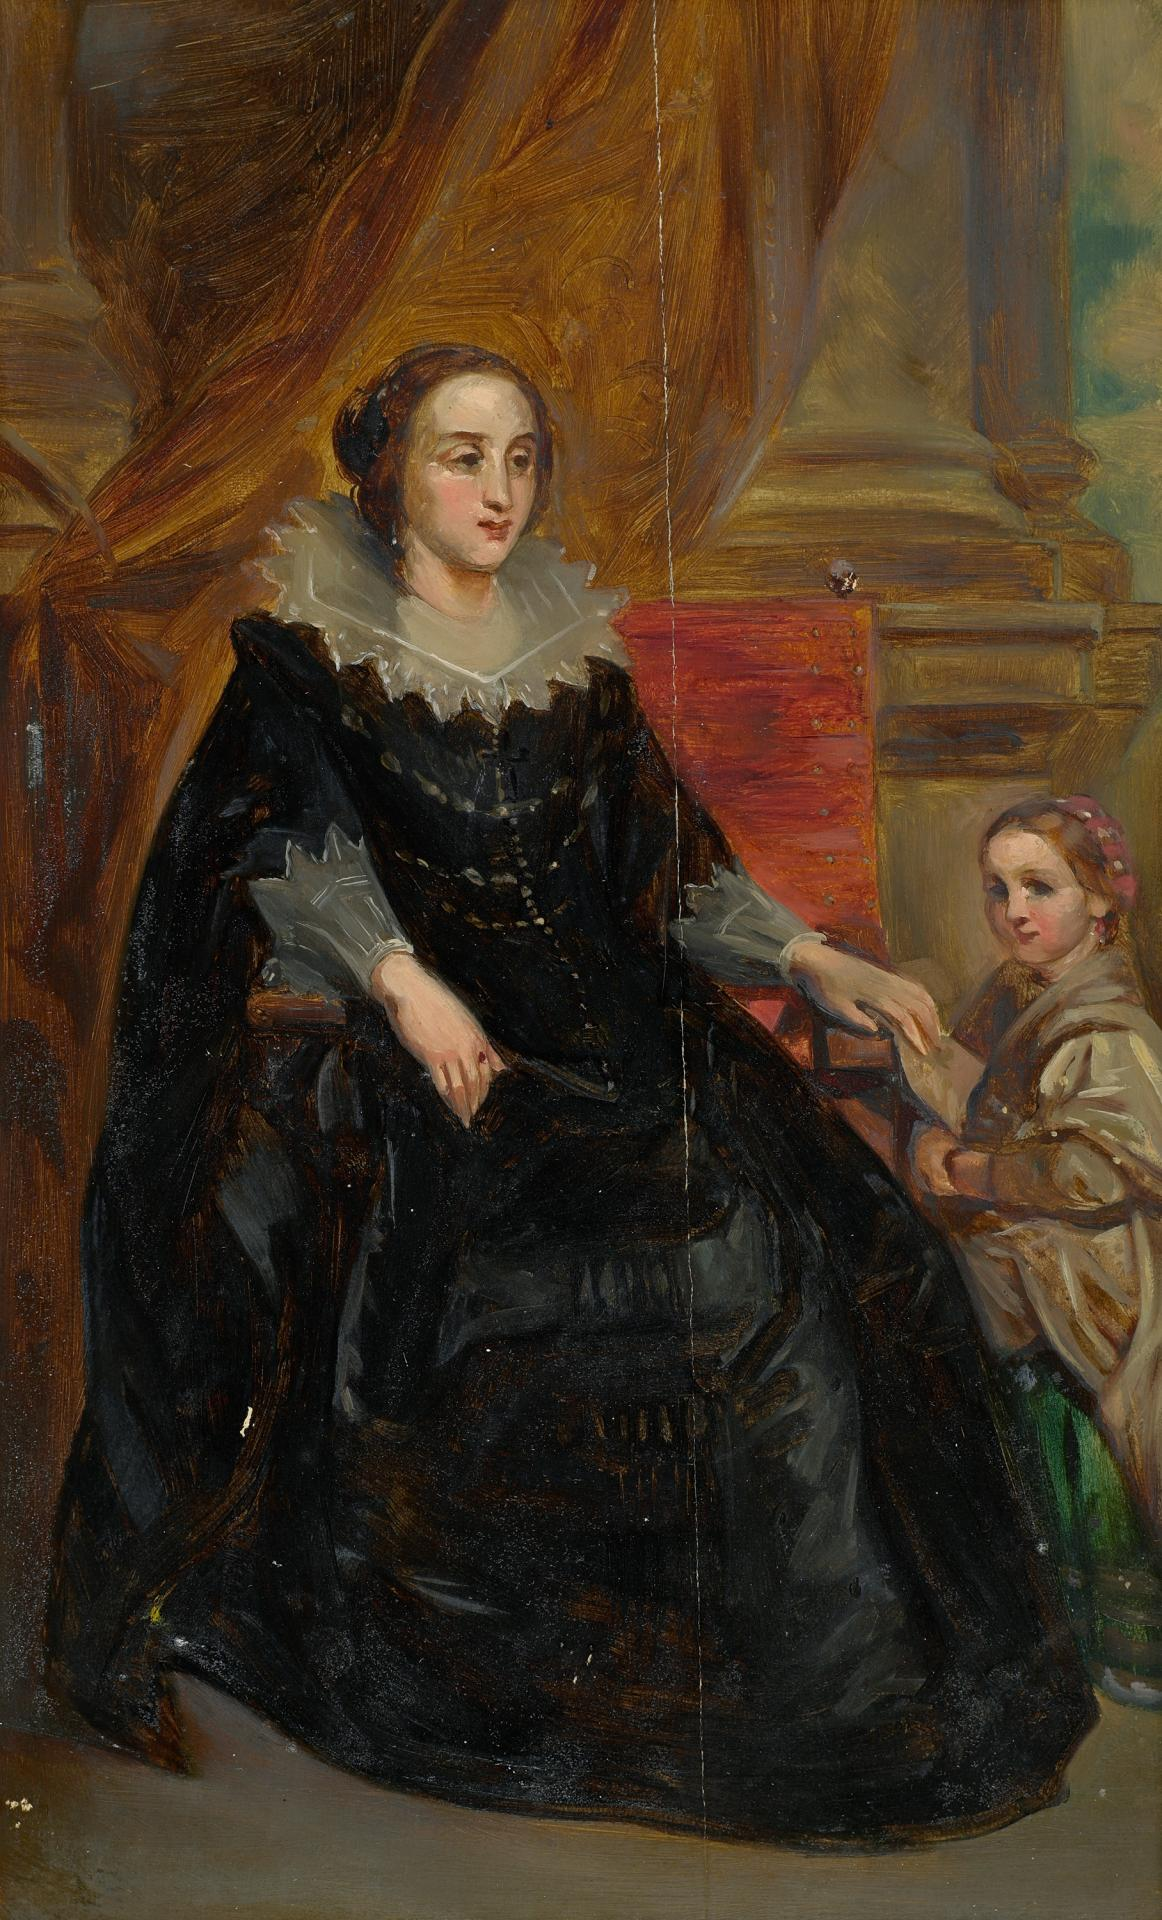 Study for picture of lady and child